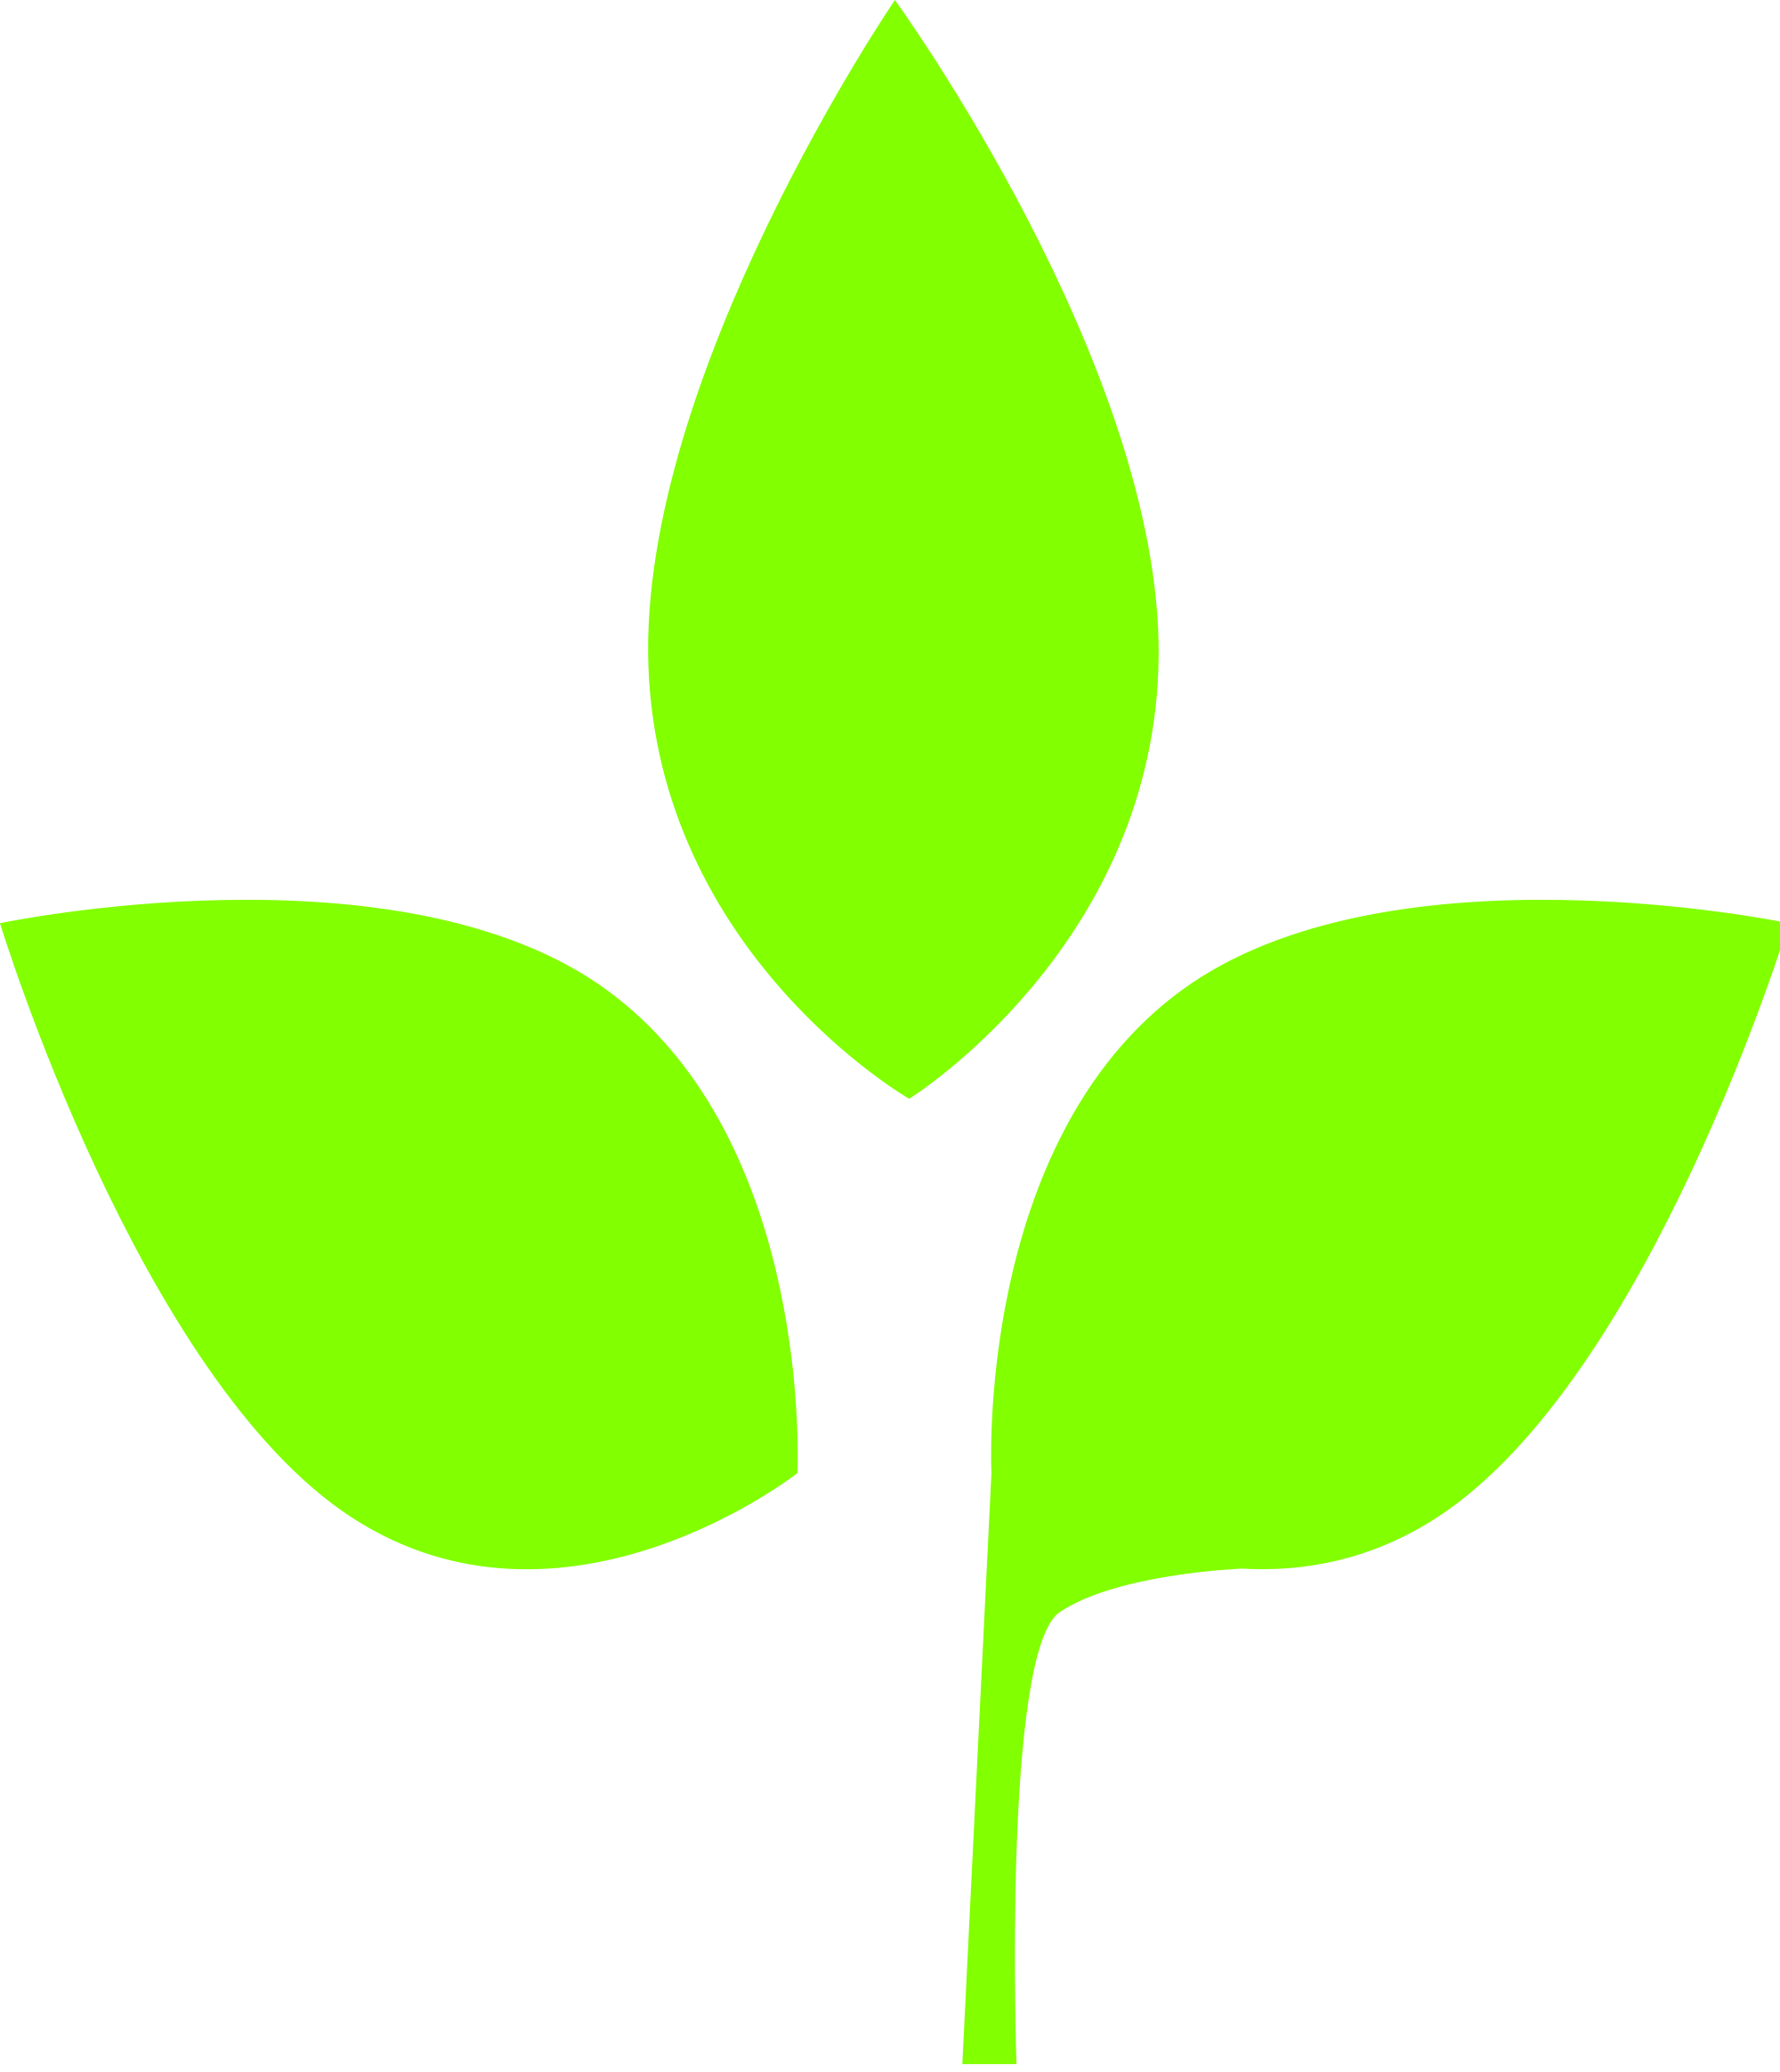 Leaf clipart icon. File svg wikimedia commons